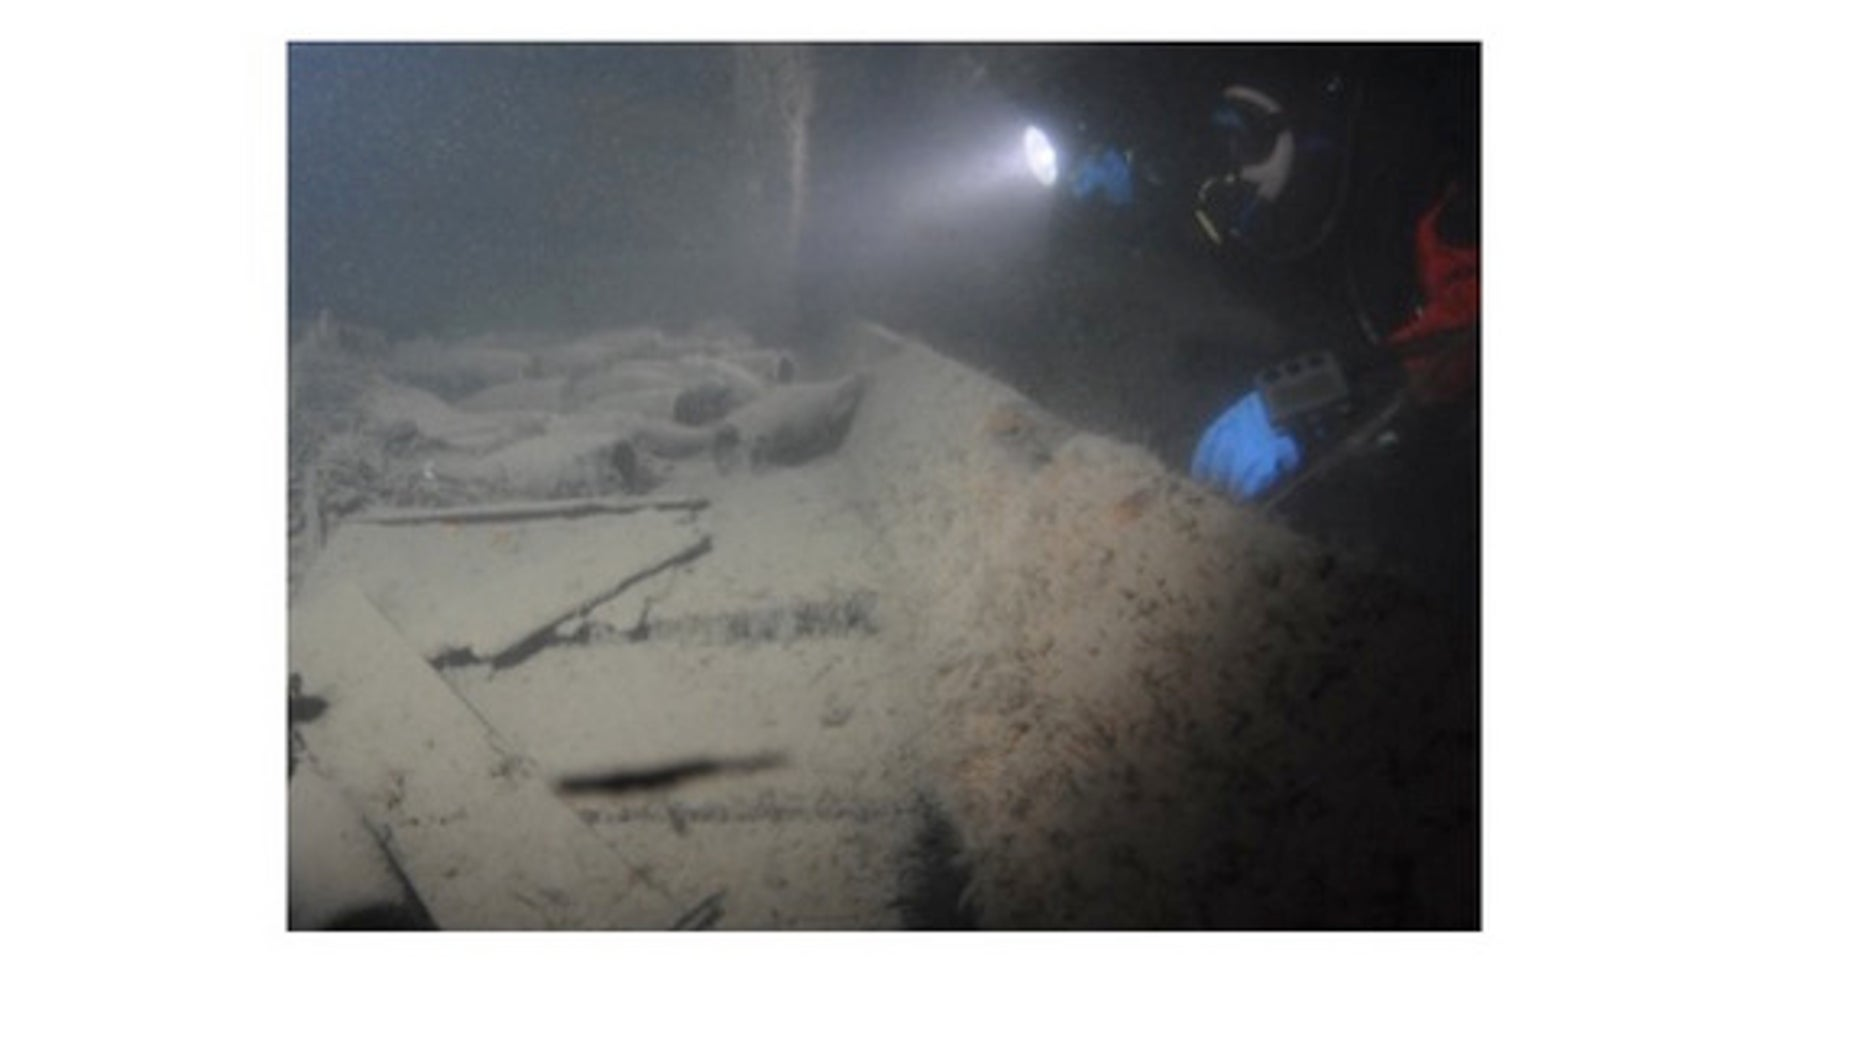 Divers found the bottles in 2010 while exploring a shipwreck in the Baltic Sea.